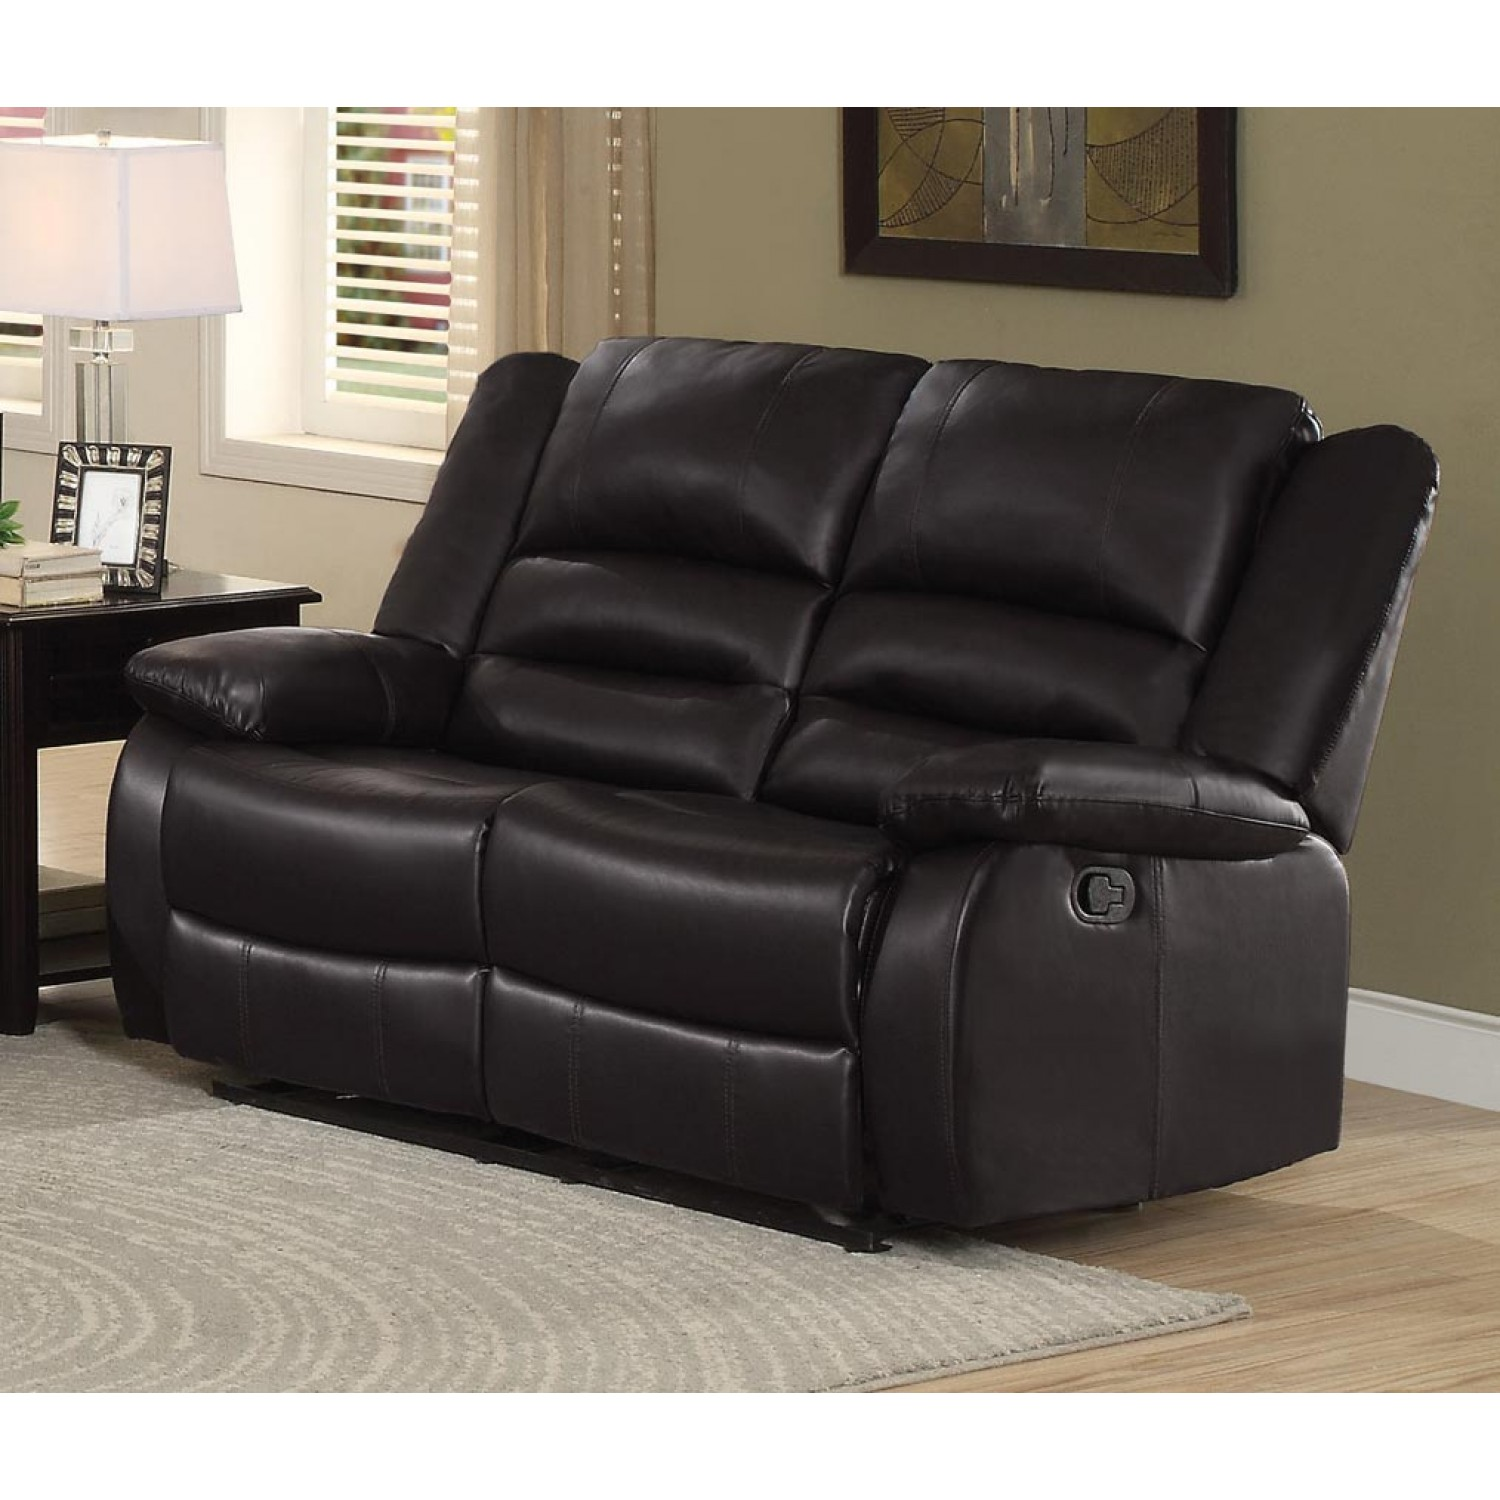 Double Recliner Chair Homelegance Jarita Brown Double Reclining Love Seat